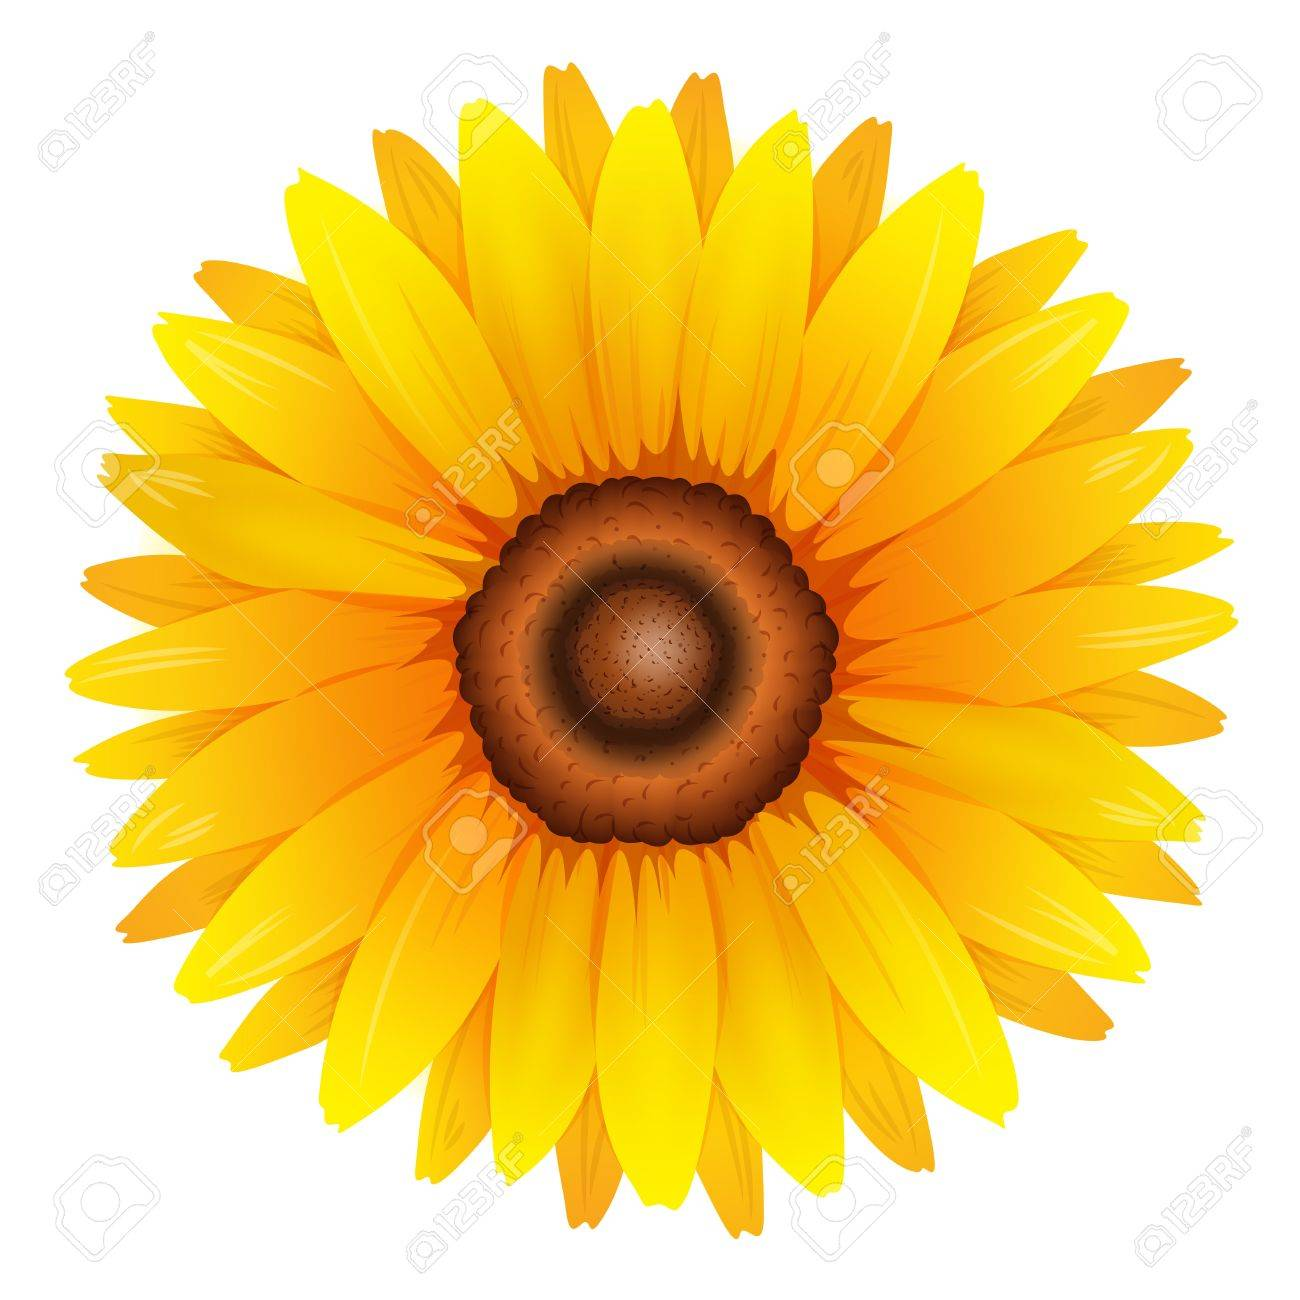 Illustration showing the sunflower Stock Vector - 21637768